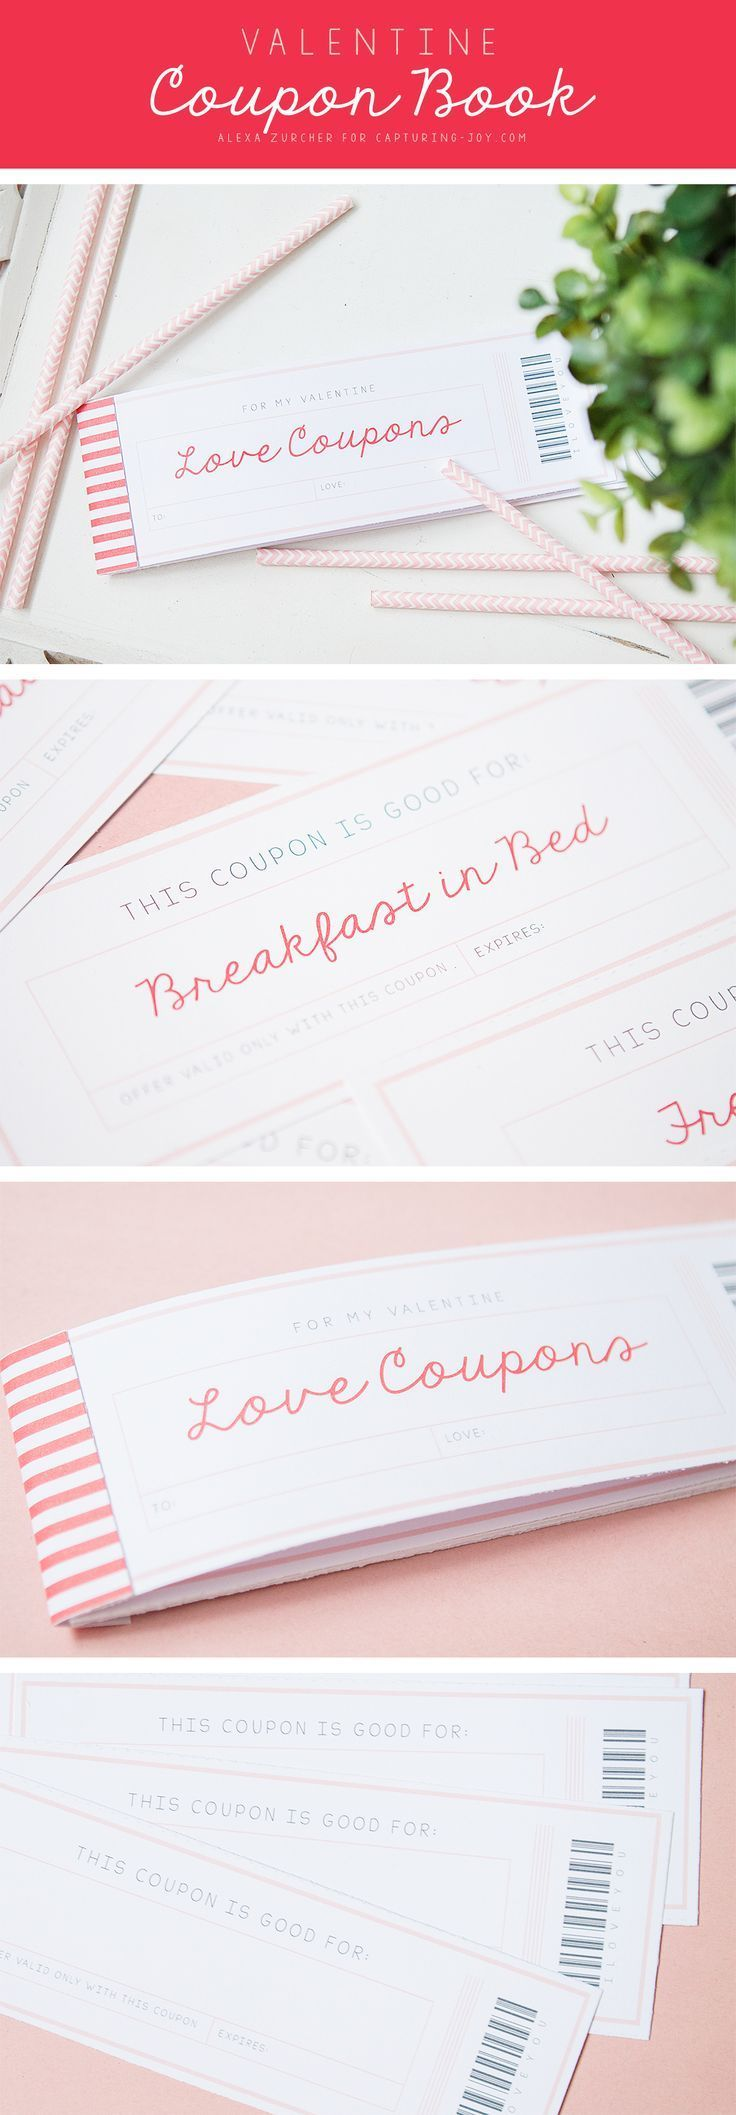 best ideas about coupon books mother s day valentine coupon book printable